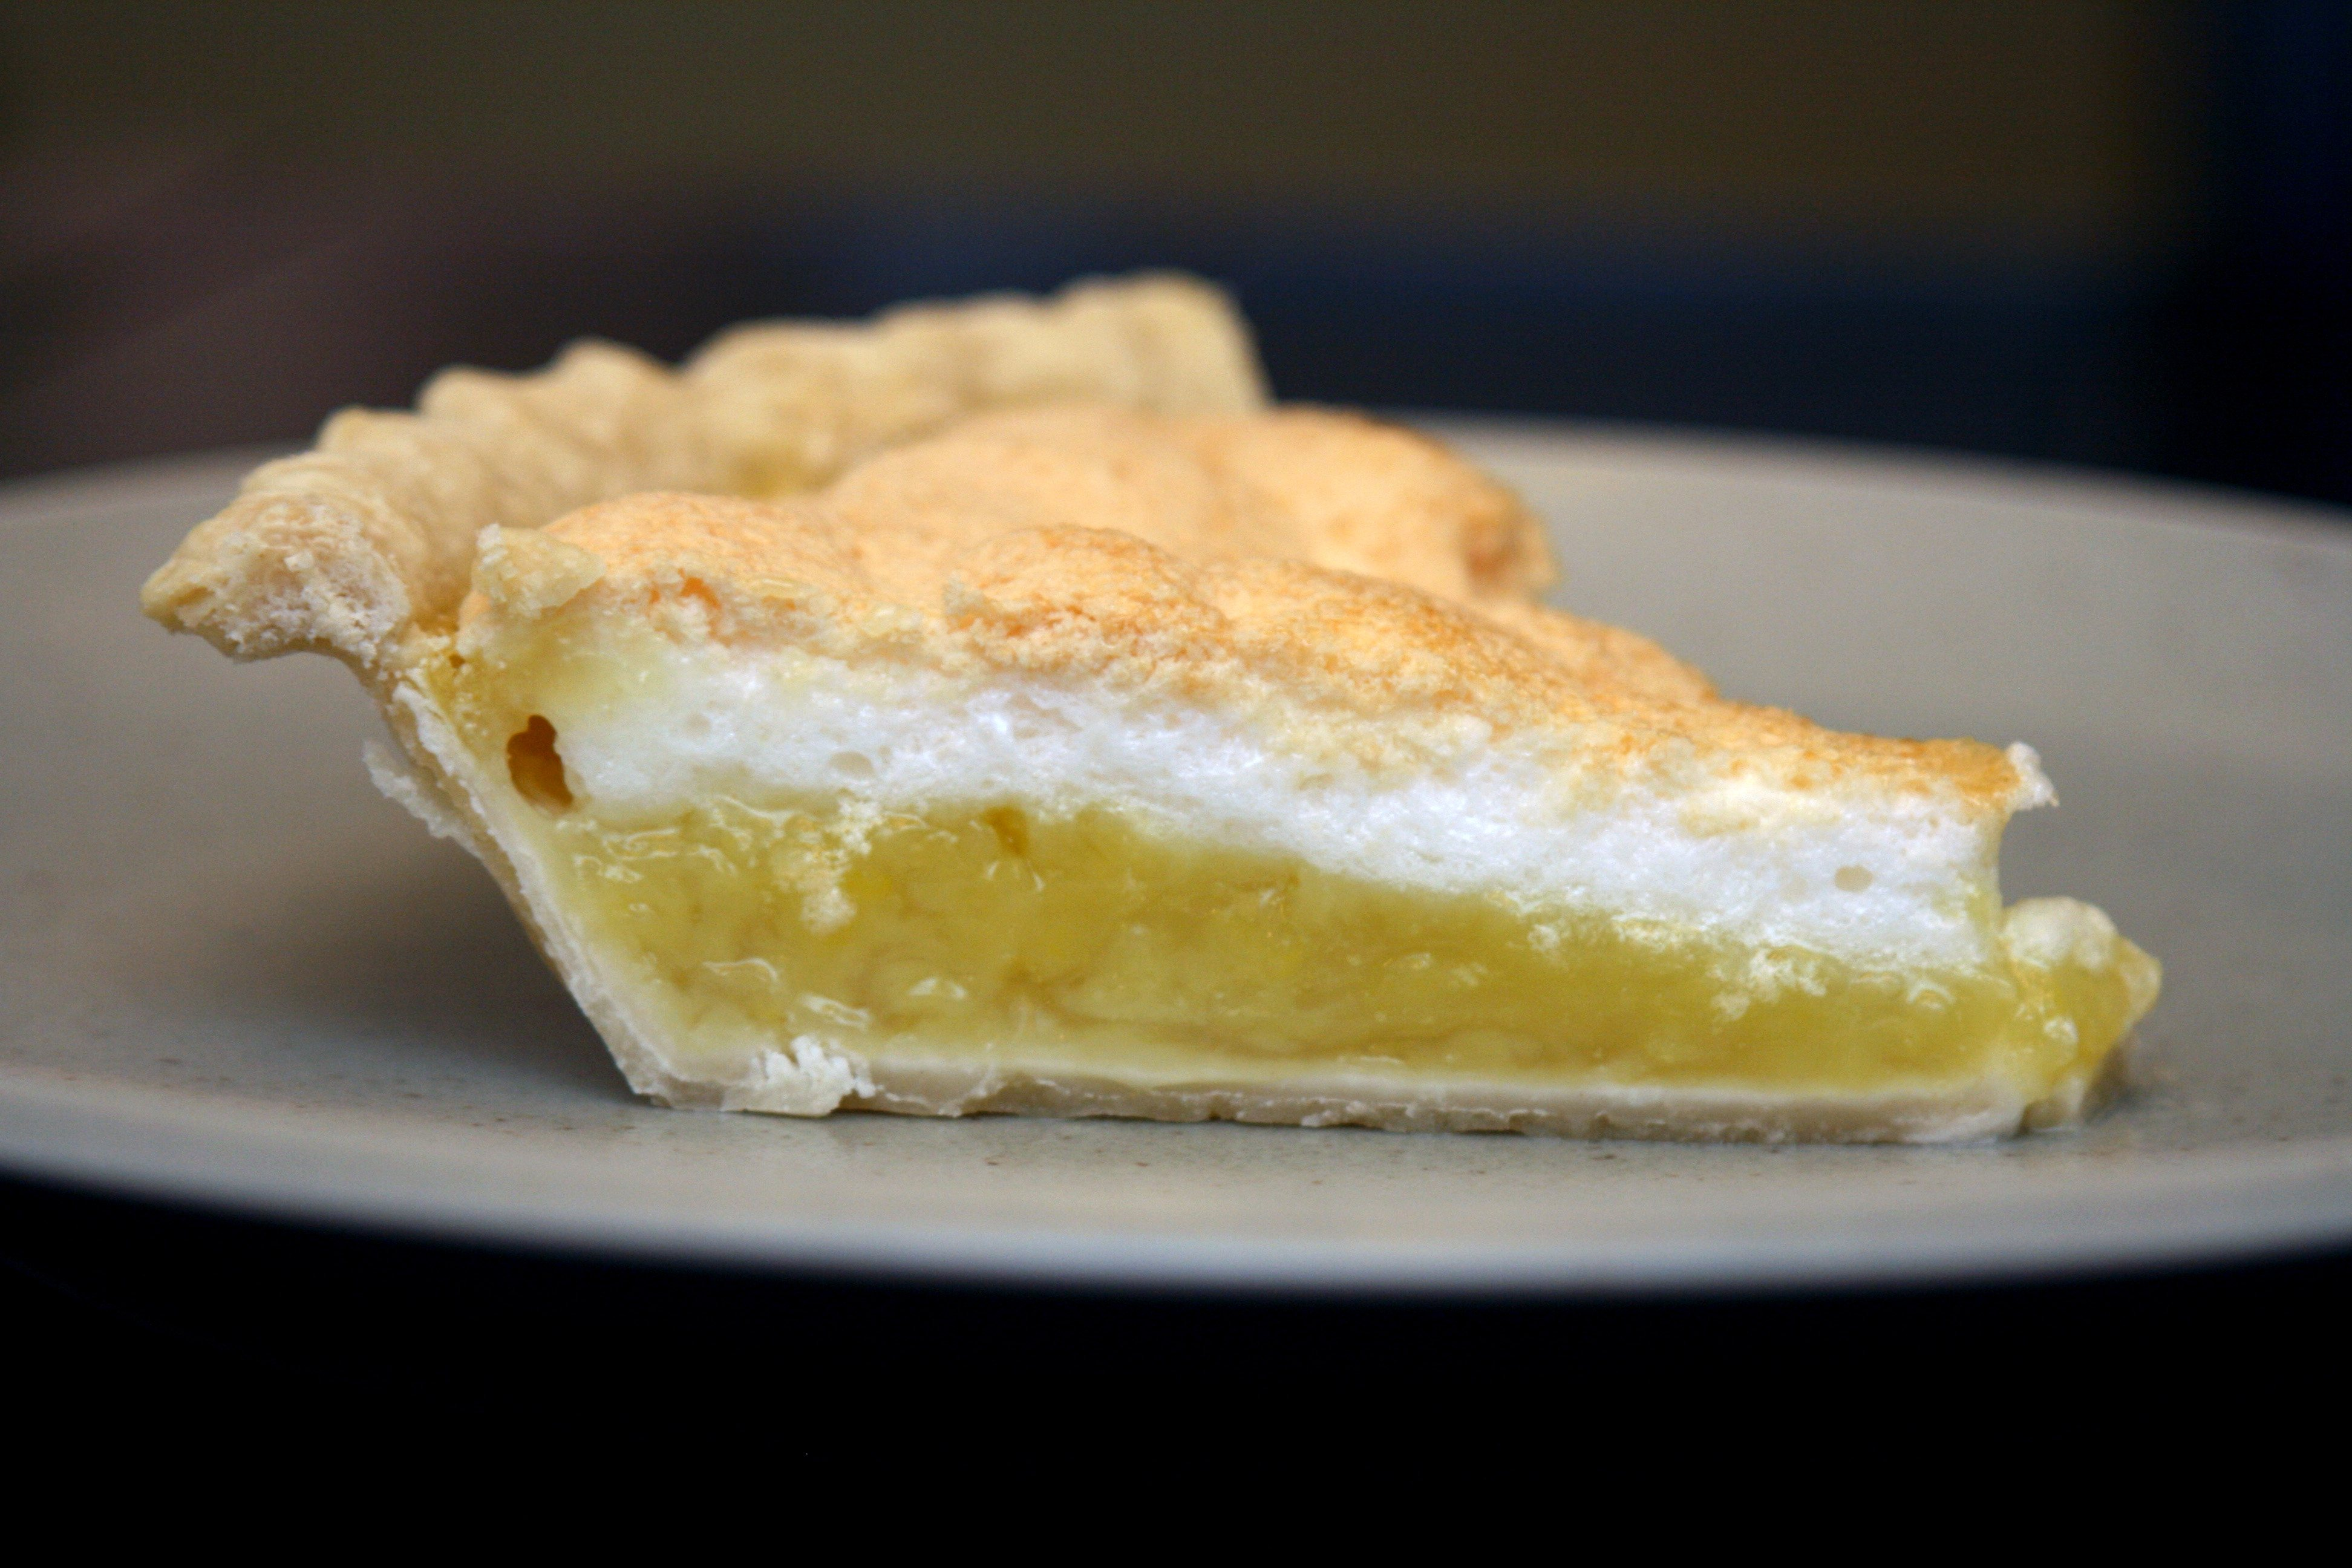 Kitchen Mishaps, Father's Day and Lemon Meringue Pie